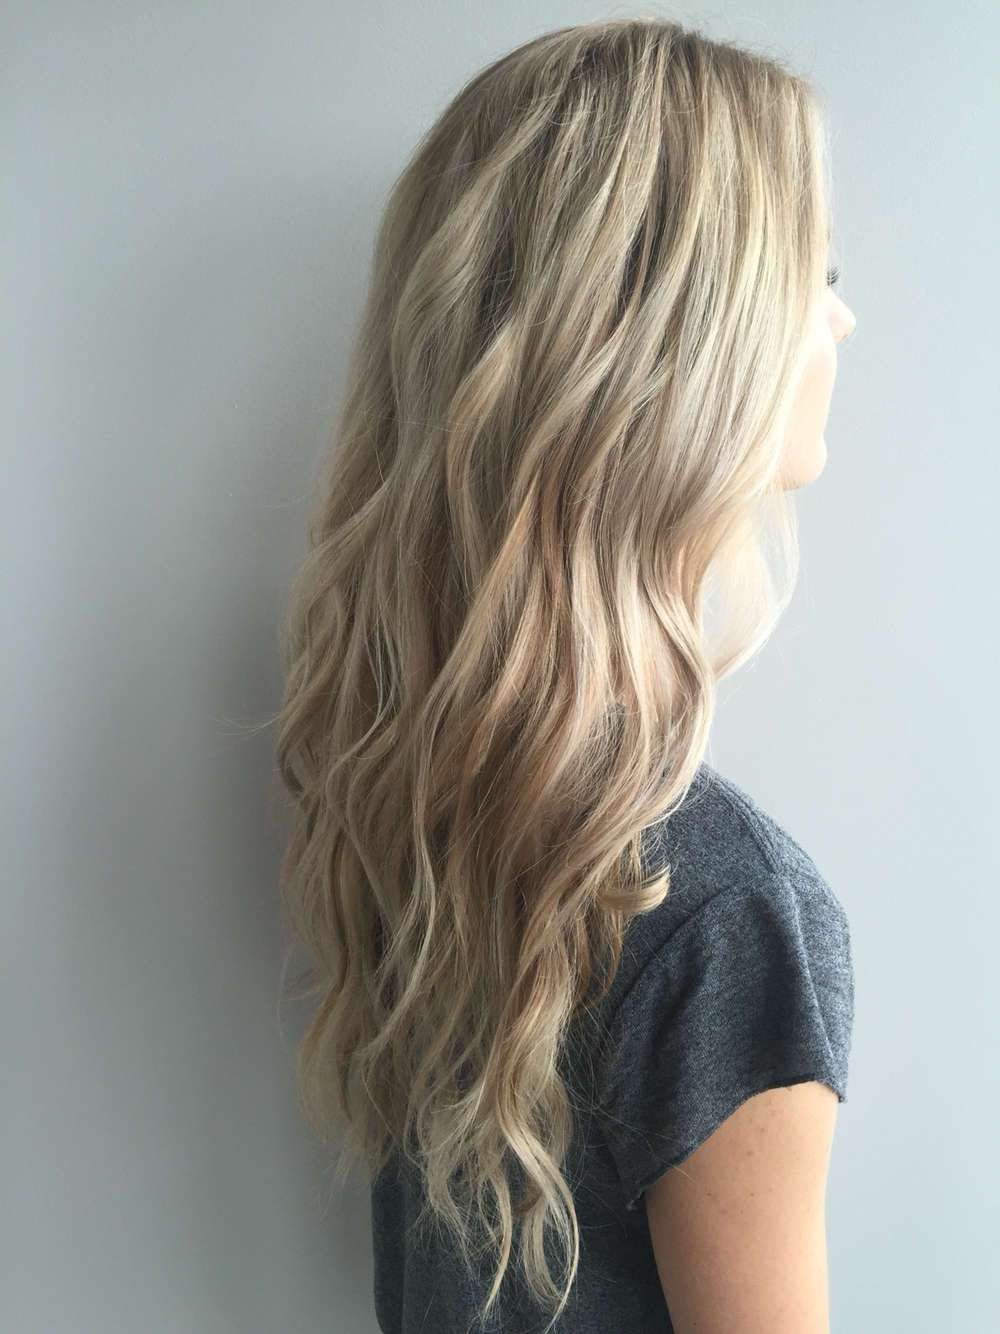 Dirty Blonde Hair Ideas Color 39 Hair Styles Pinterest Blondes